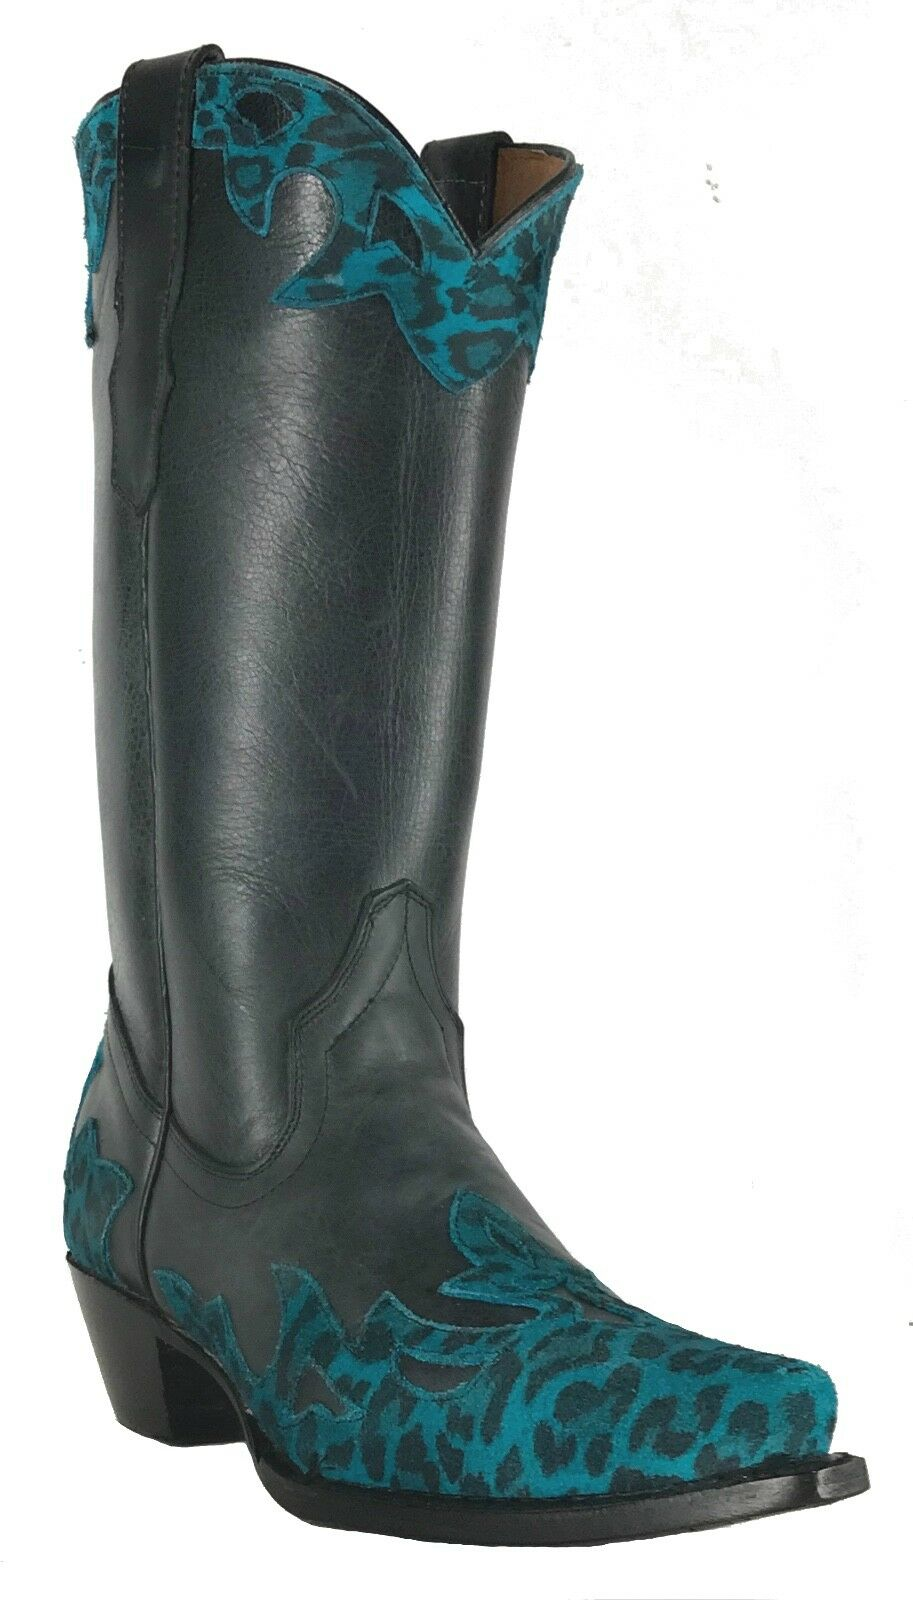 Women's New Cheetah Design Leather Cowgirl Western Boots Boots Boots Black Turquoise Sale 53023a